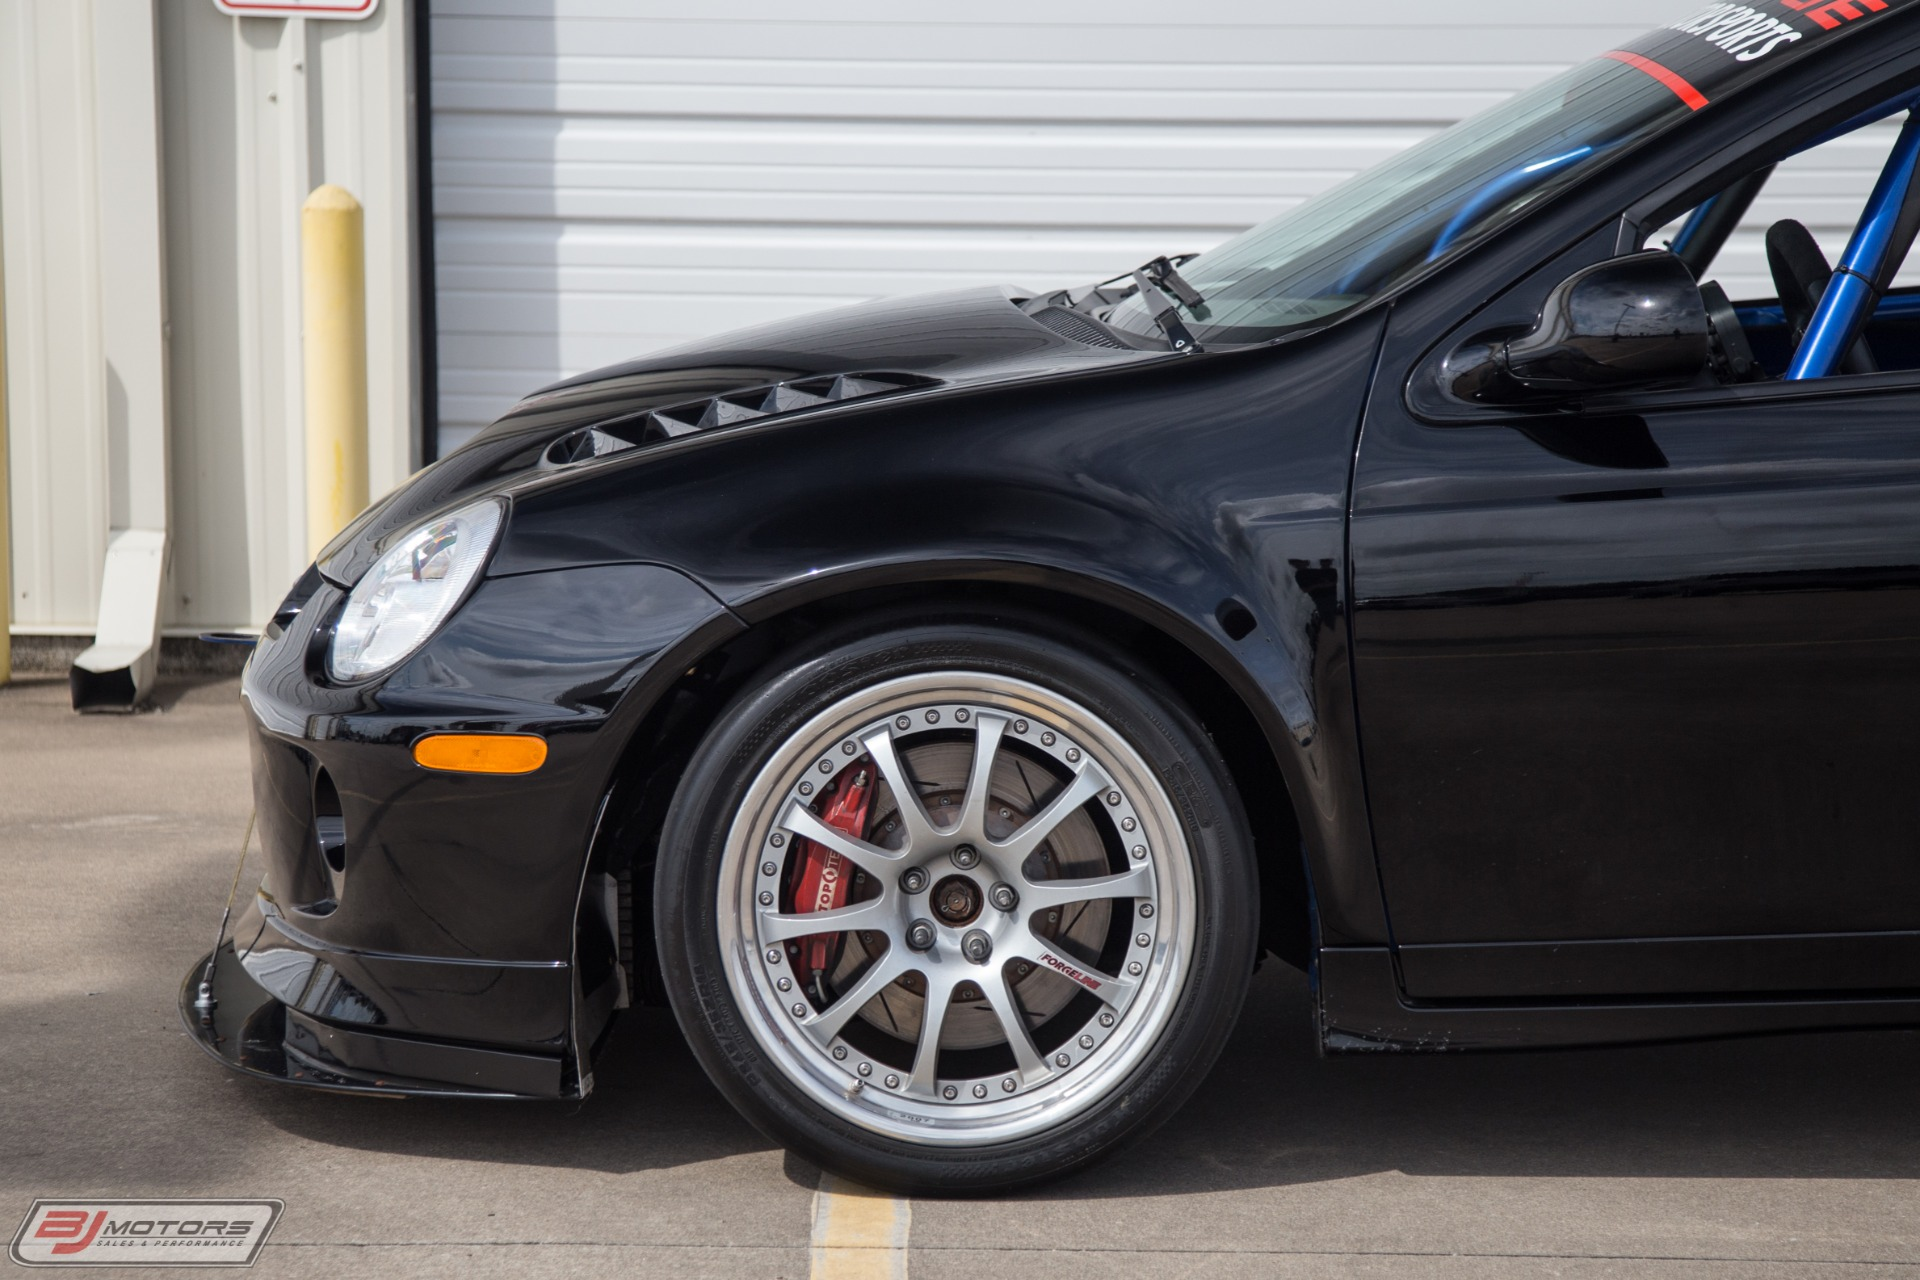 Used 2004 Dodge Neon Srt 4 Race Car Srt4 For Sale 17995 Speed Wire Wiring